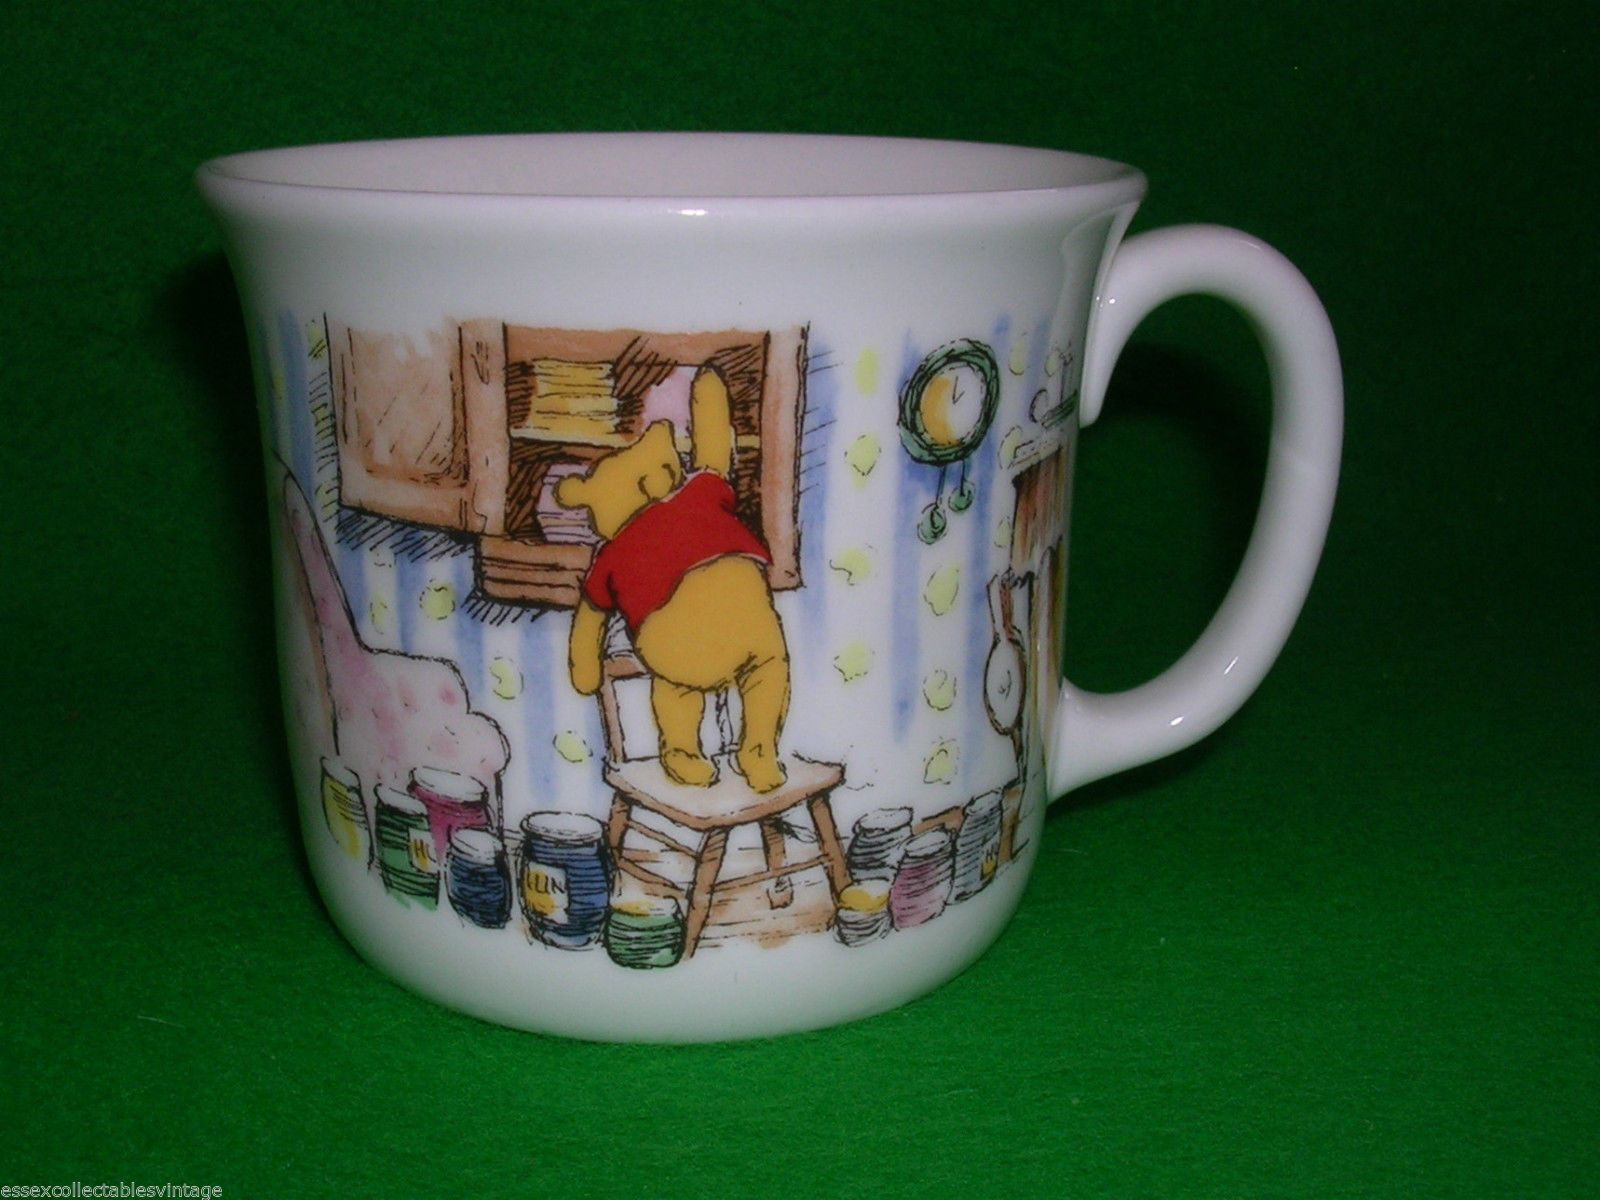 Royal Doulton Winnie the Pooh Mug Disney Fine English Bone China Cup